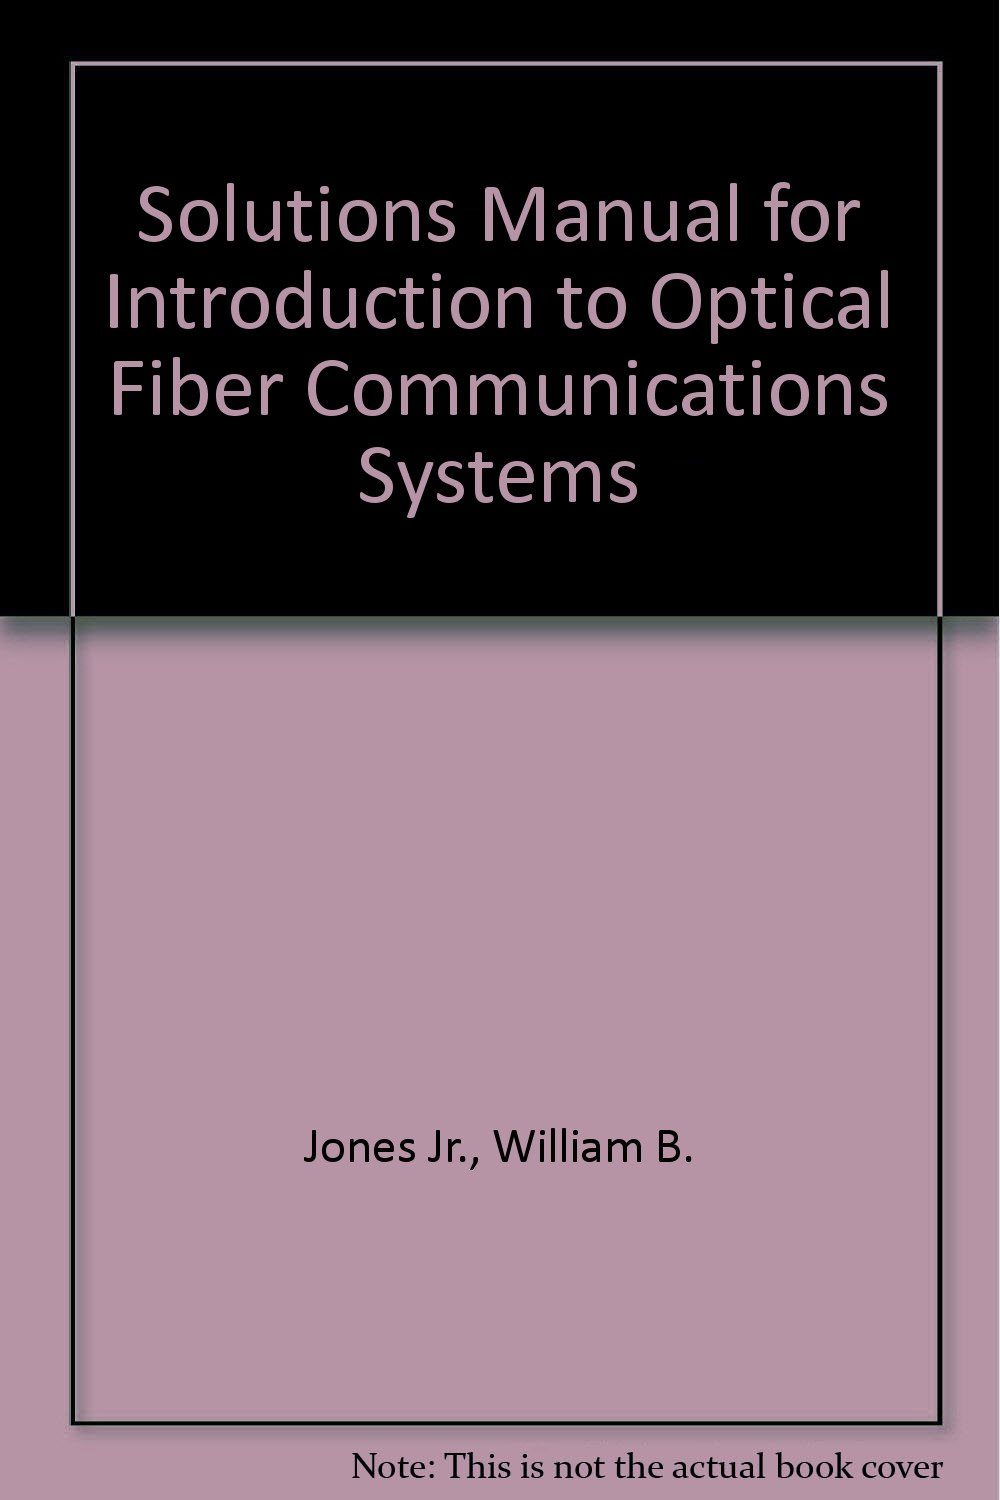 Solutions Manual for Introduction to Optical Fiber Communications Systems: Solutions  Manual: William B. Jones: 9780030095474: Amazon.com: Books